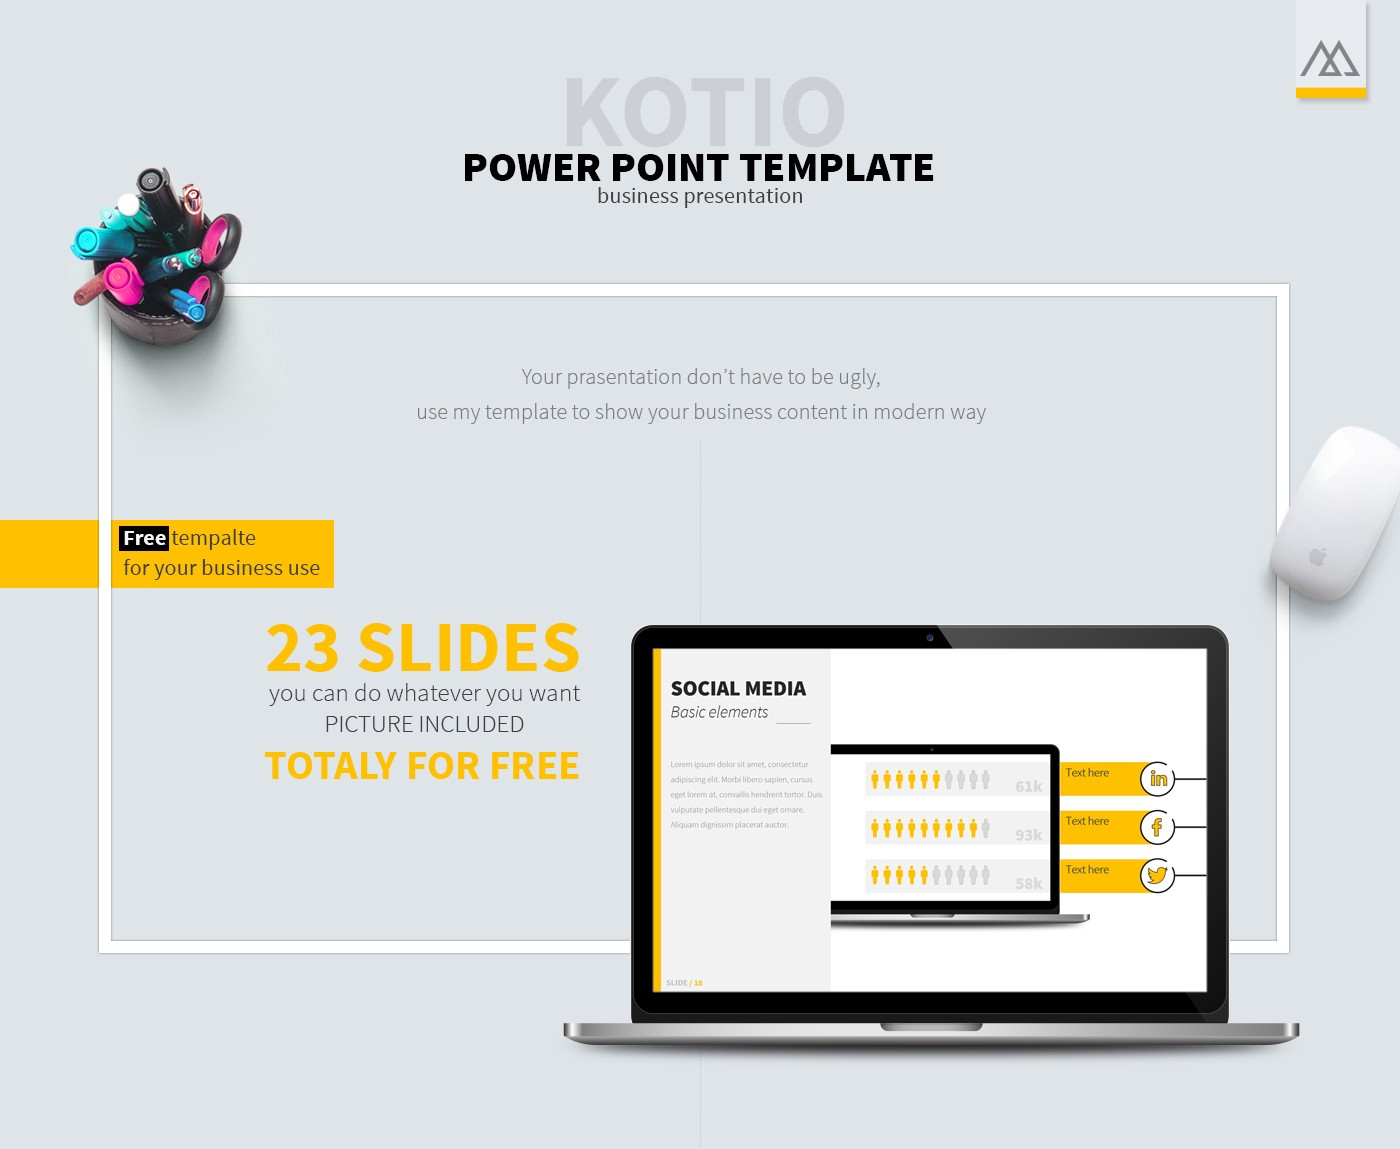 40 free cool powerpoint templates for presentations you can customize every slide to fit your presentation and its ready to use photos are easy to access therefore no time wasted friedricerecipe Choice Image